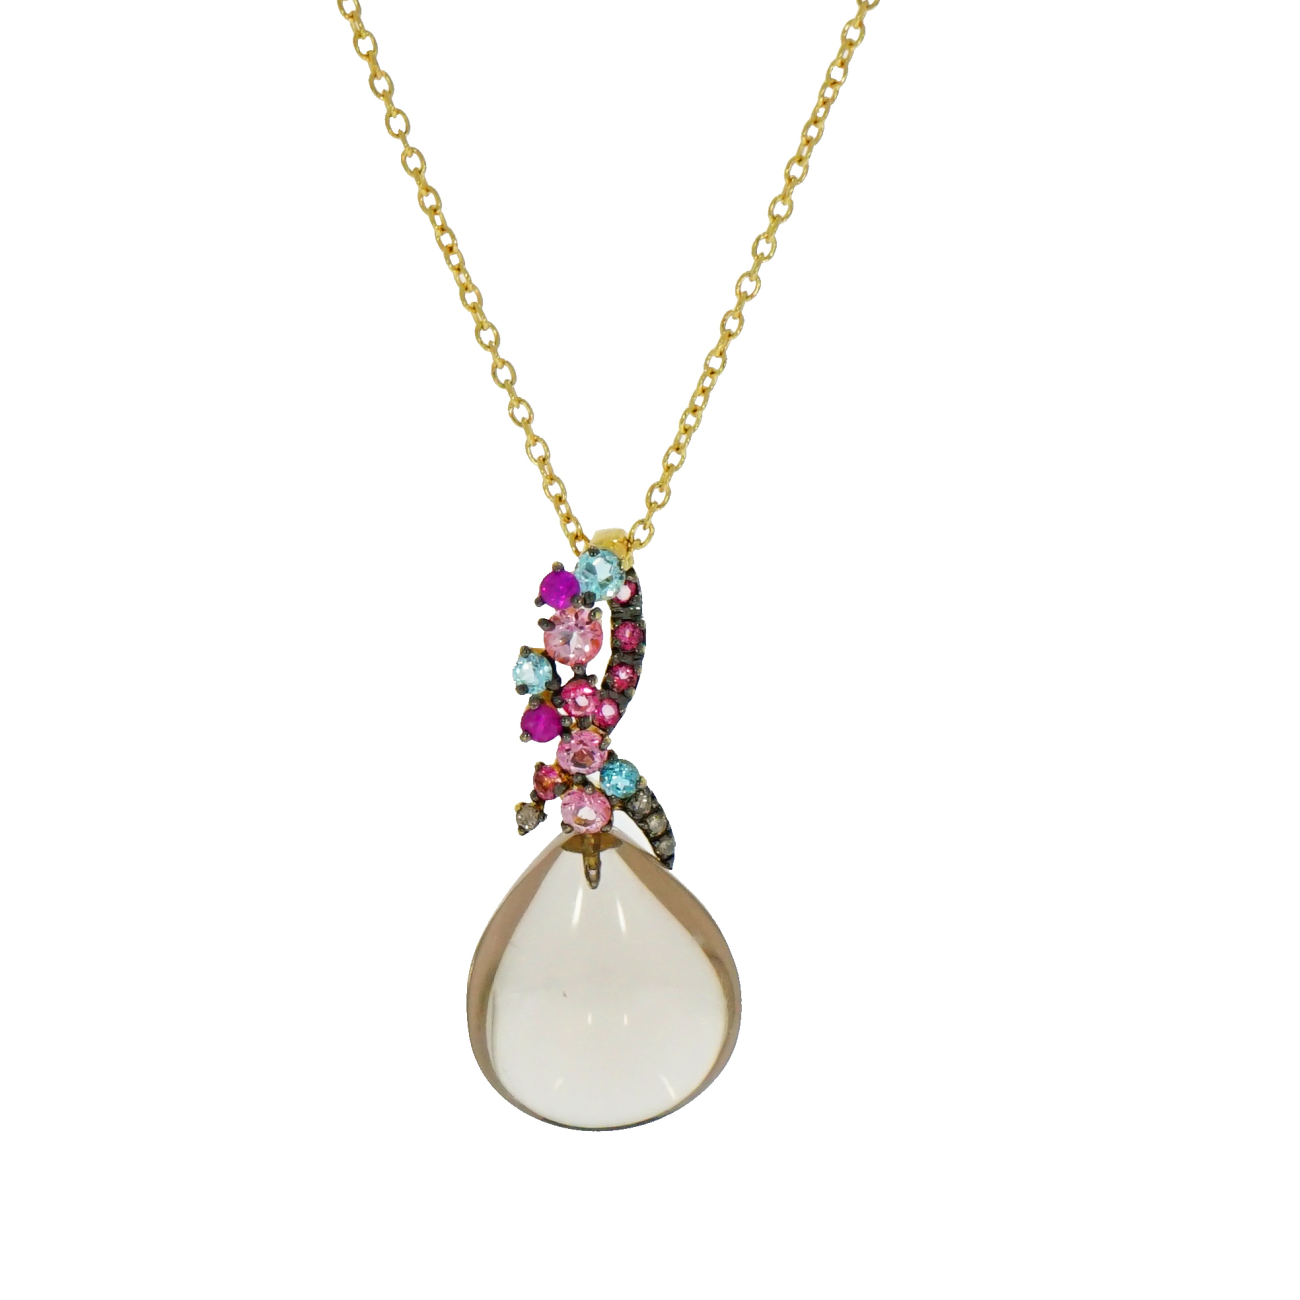 Brumani Jewelry - Smoky Quart Pendant | Manfredi Jewels